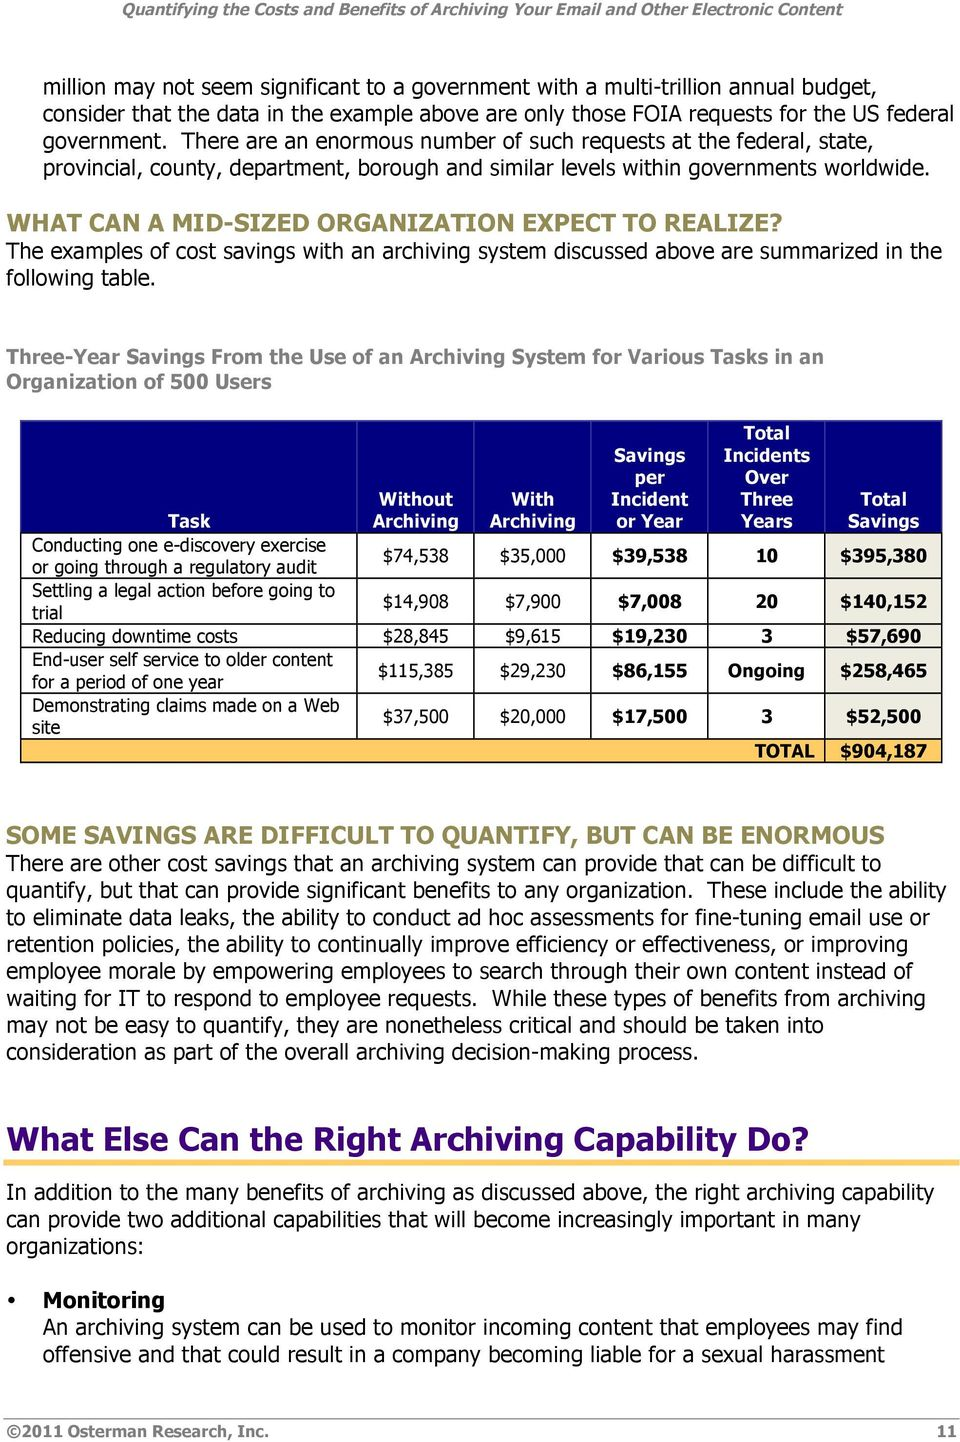 WHAT CAN A MID-SIZED ORGANIZATION EXPECT TO REALIZE? The examples of cost savings with an archiving system discussed above are summarized in the following table.